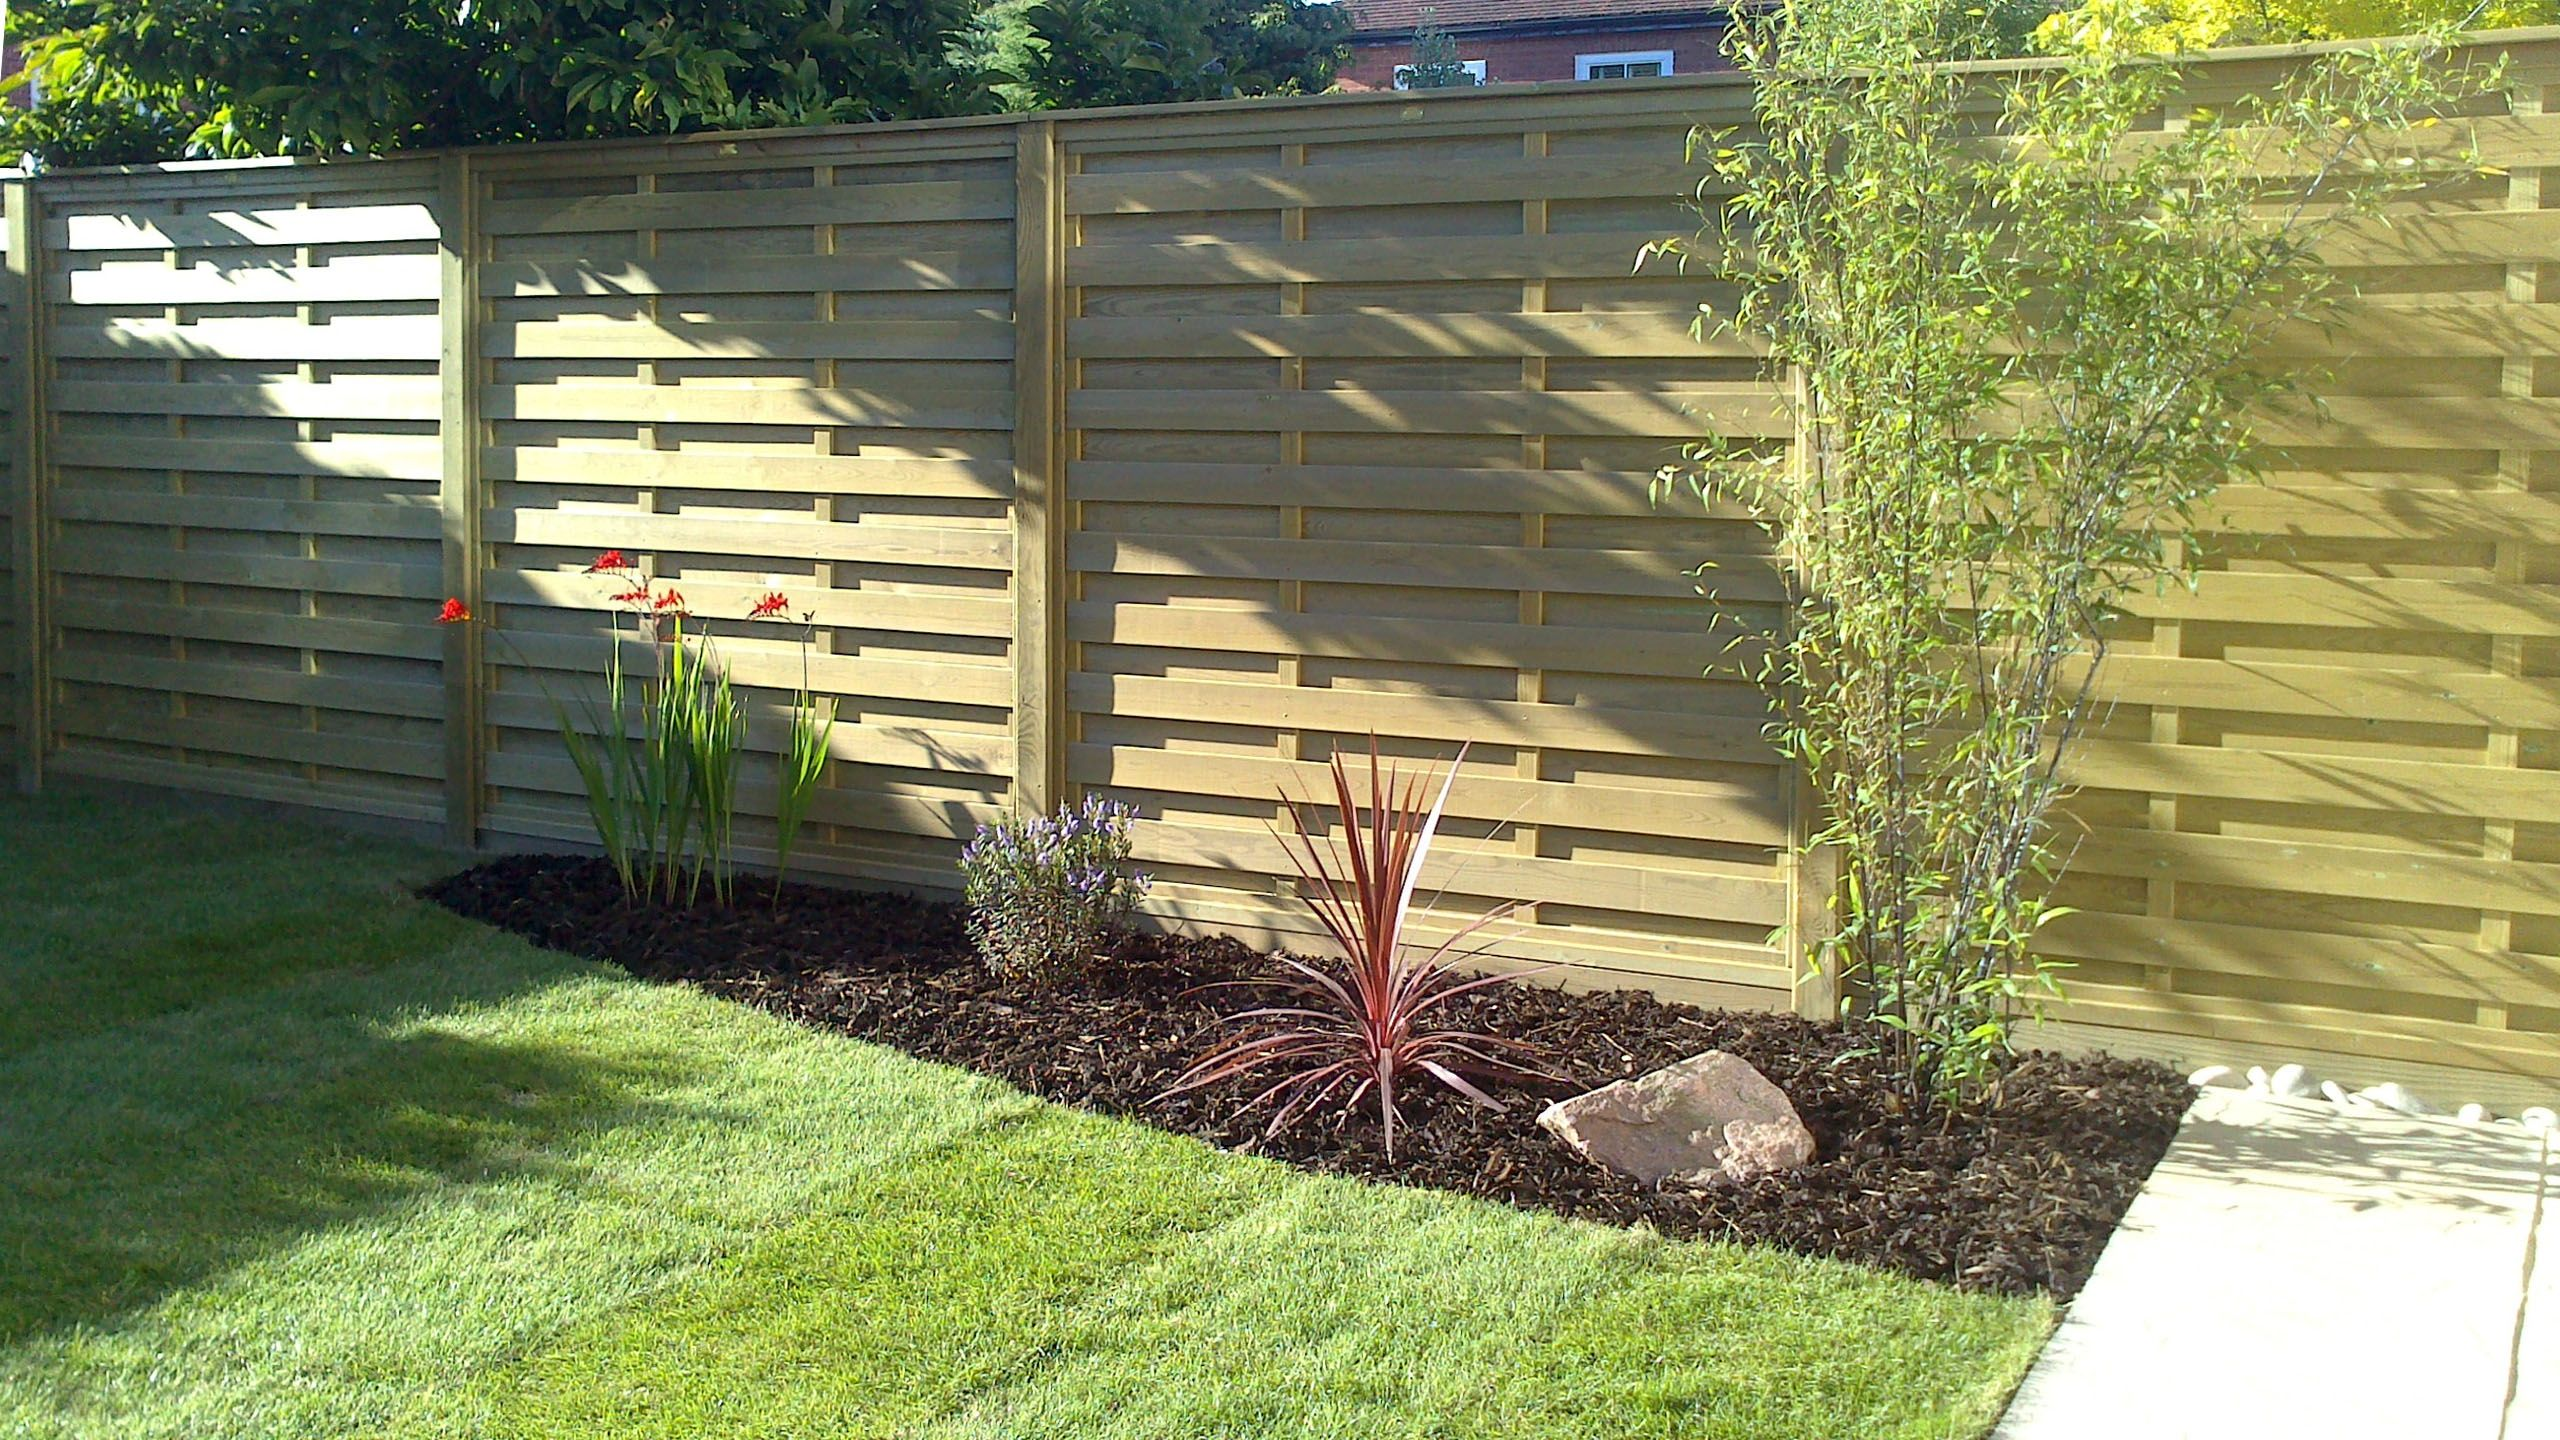 Jacksons fencing hit and miss horizontal fence panels garden jacksons fencing hit and miss horizontal fence panels garden fencing design baanklon Images